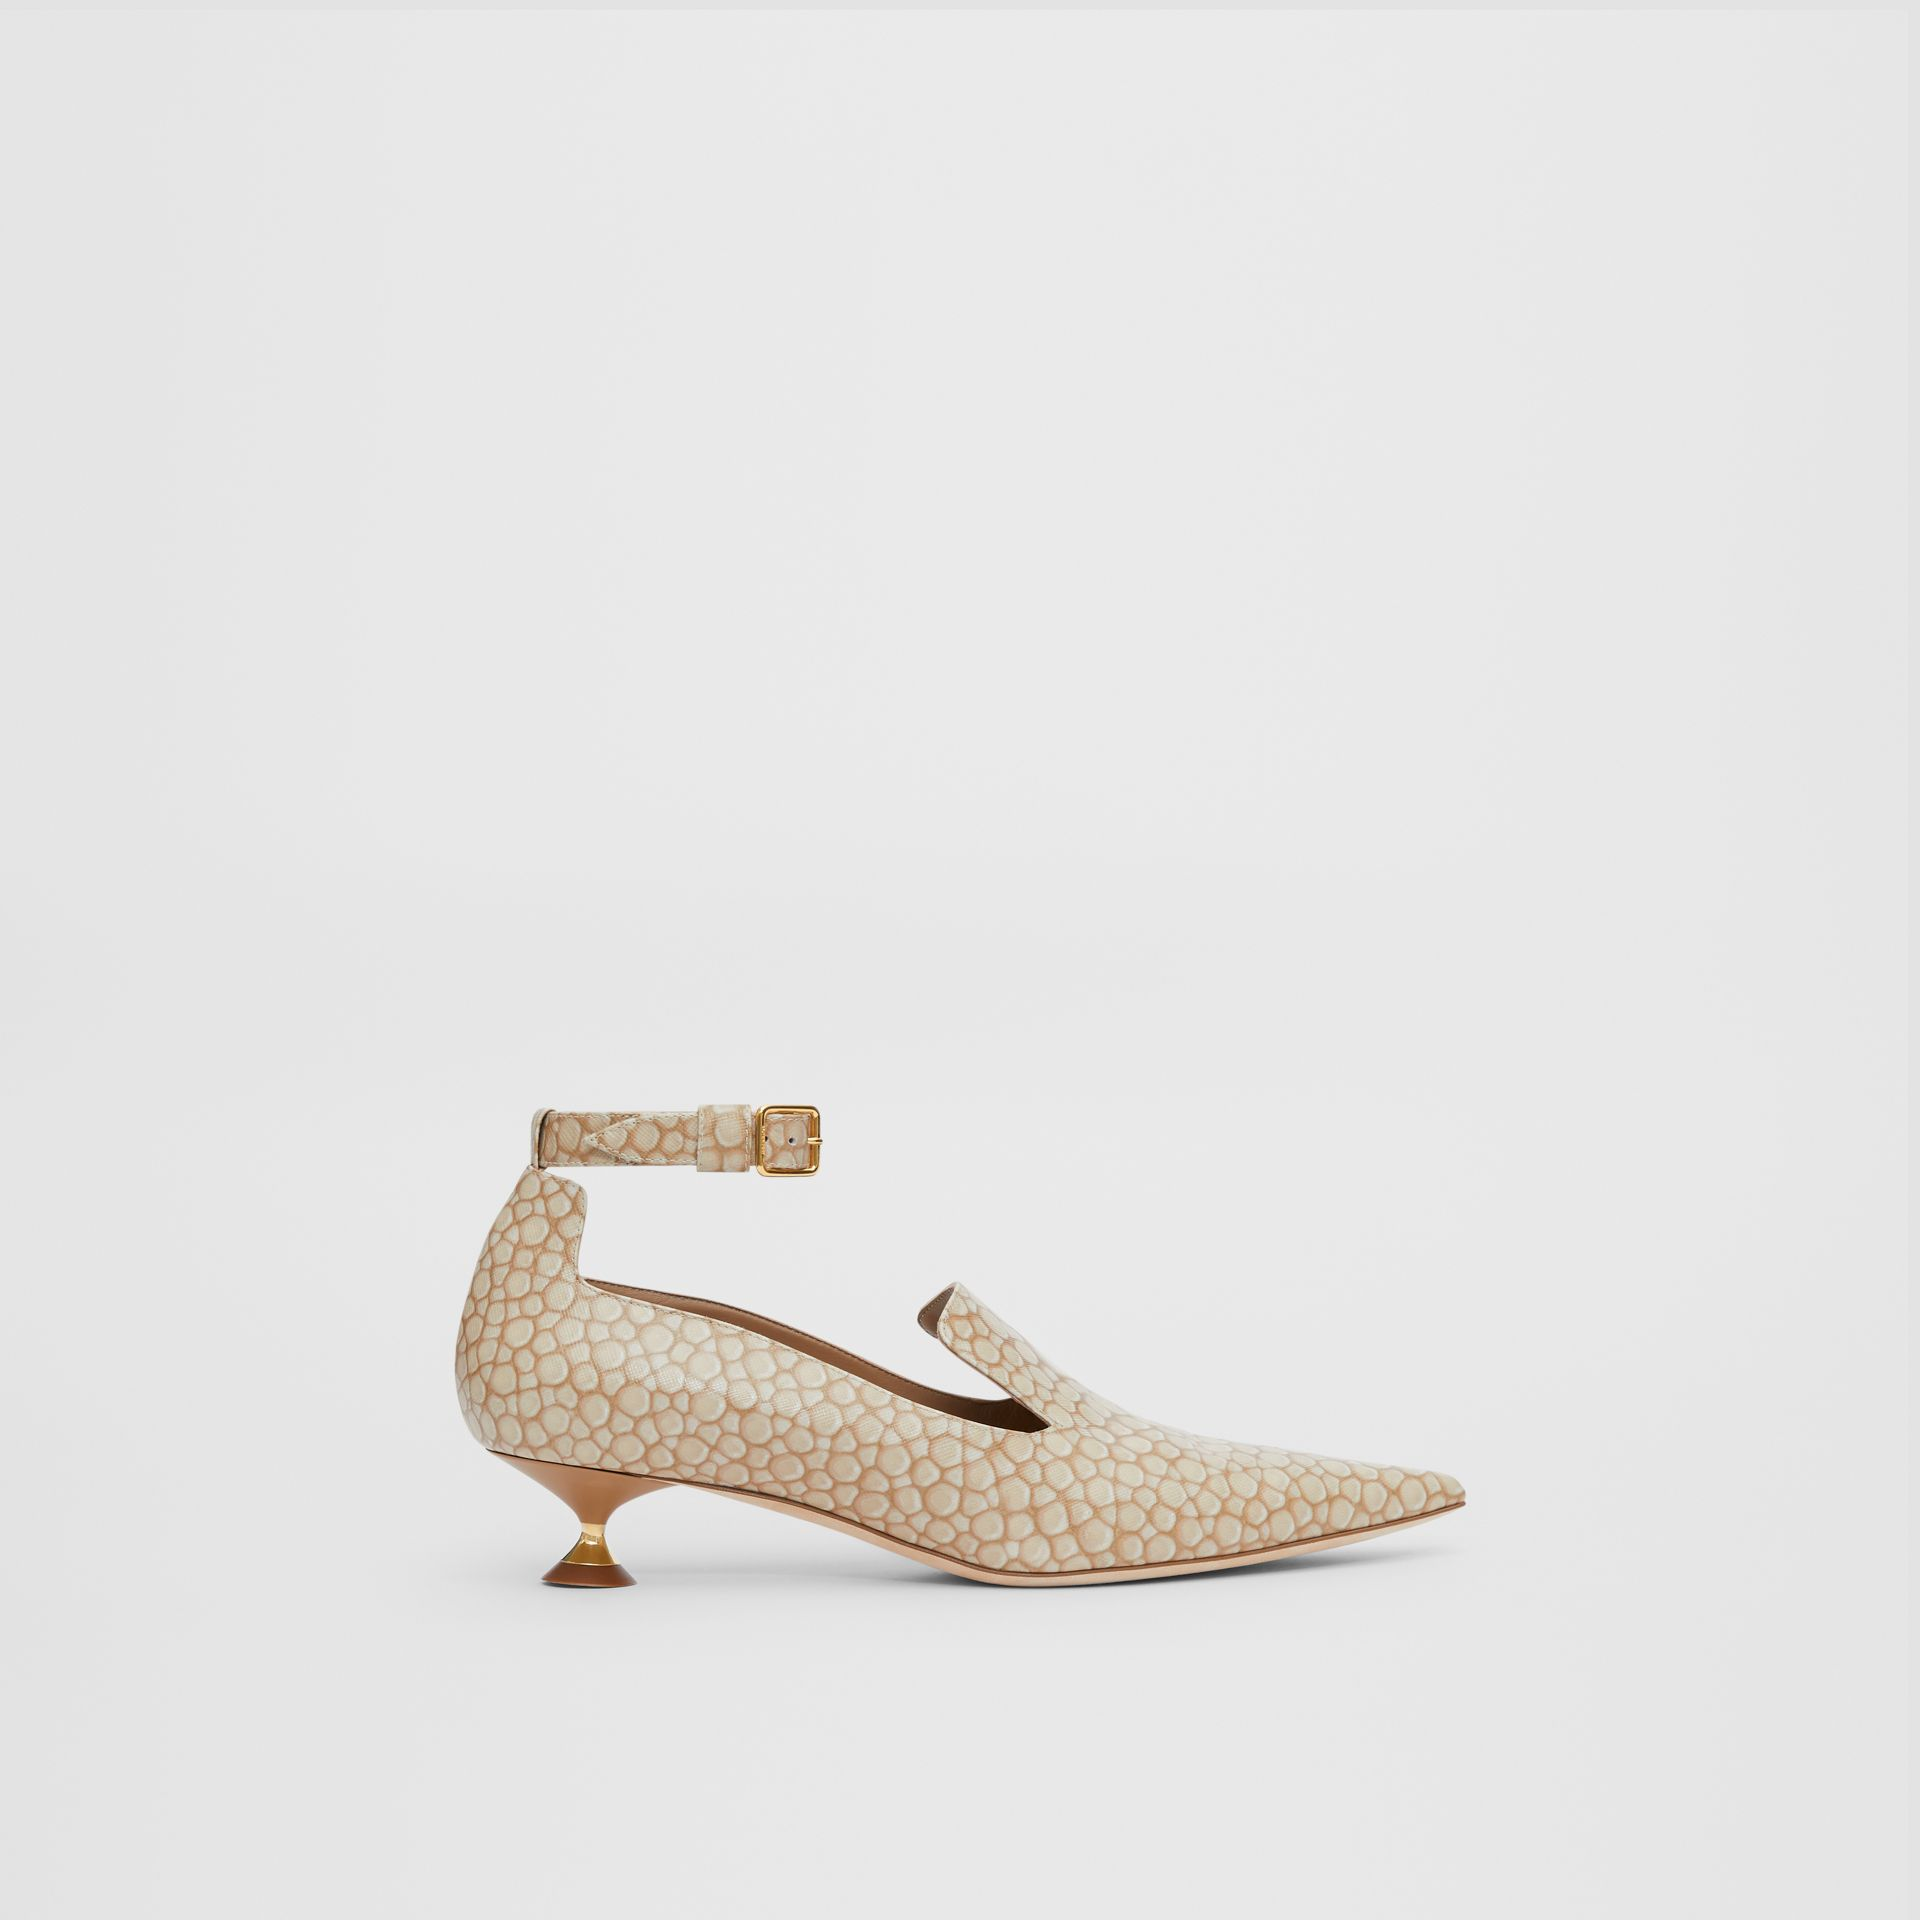 Stingray Print Leather Point-toe Kitten-heel Pumps in Nude - Women | Burberry - gallery image 4